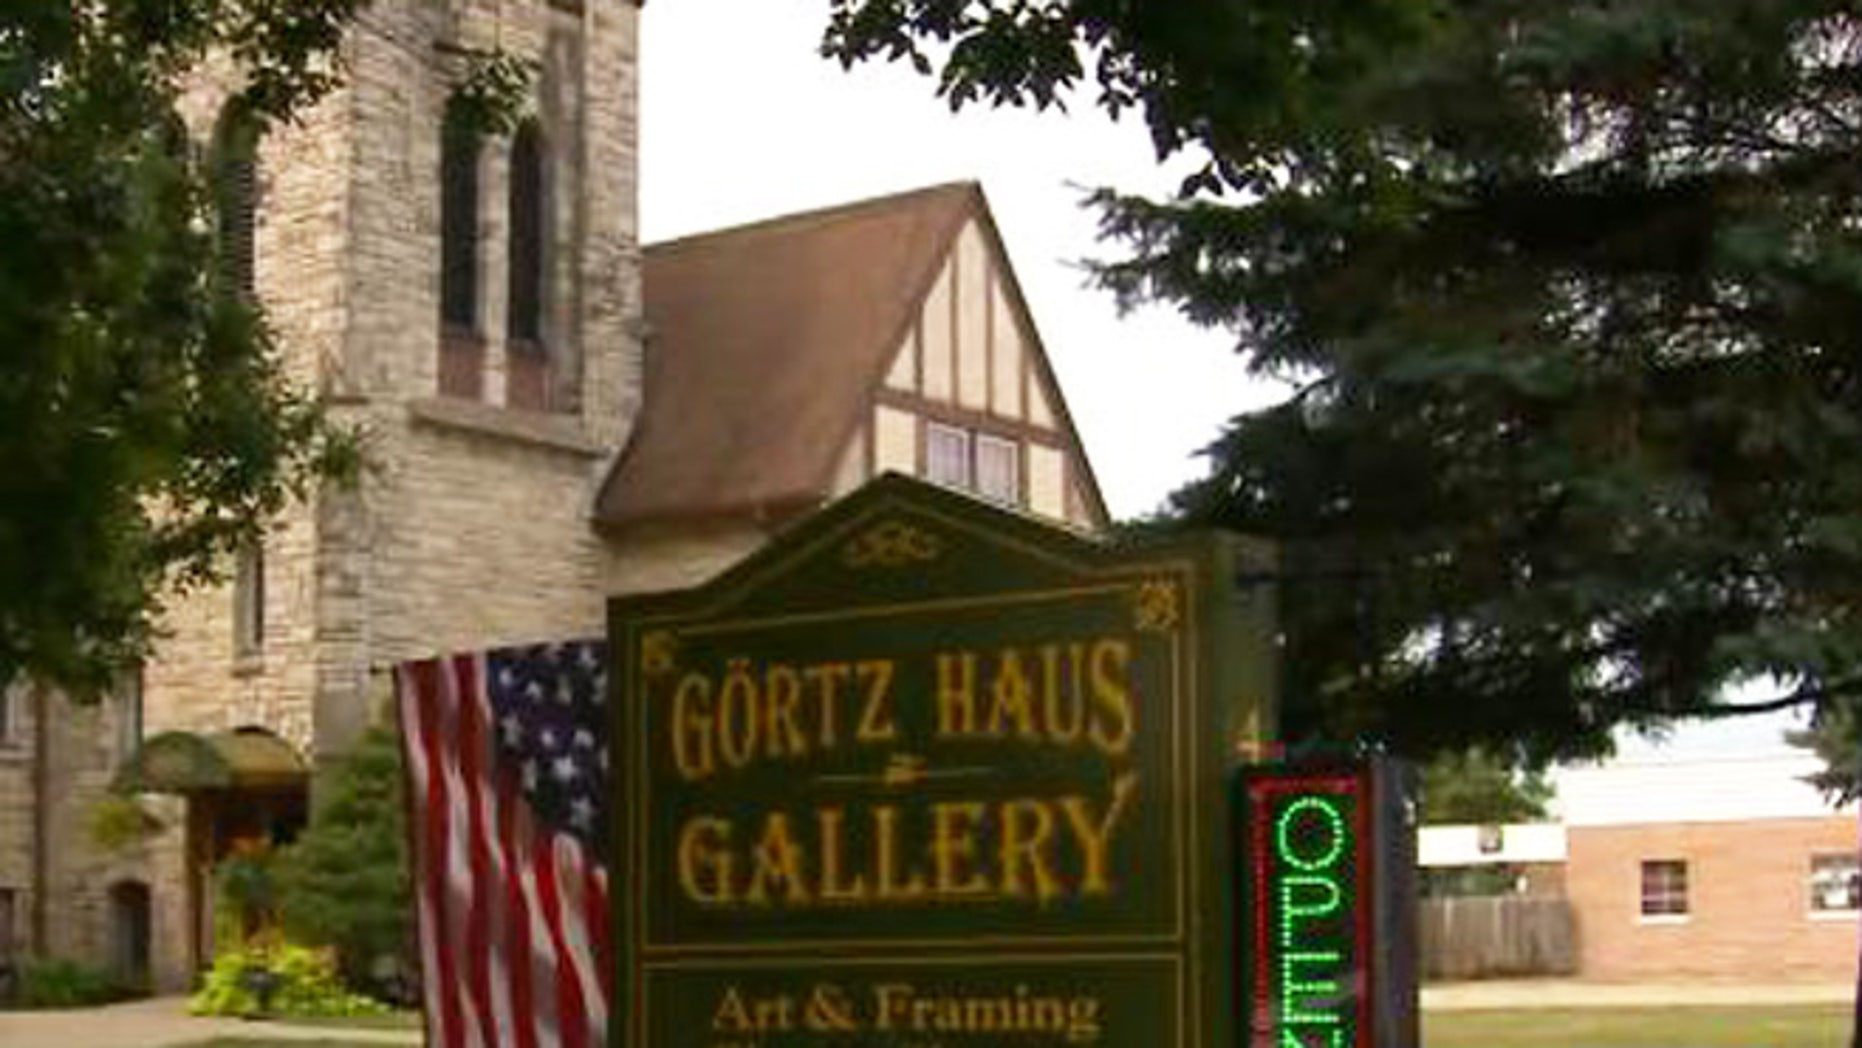 The Gortz Haus Gallery in Grimes, Iowa.